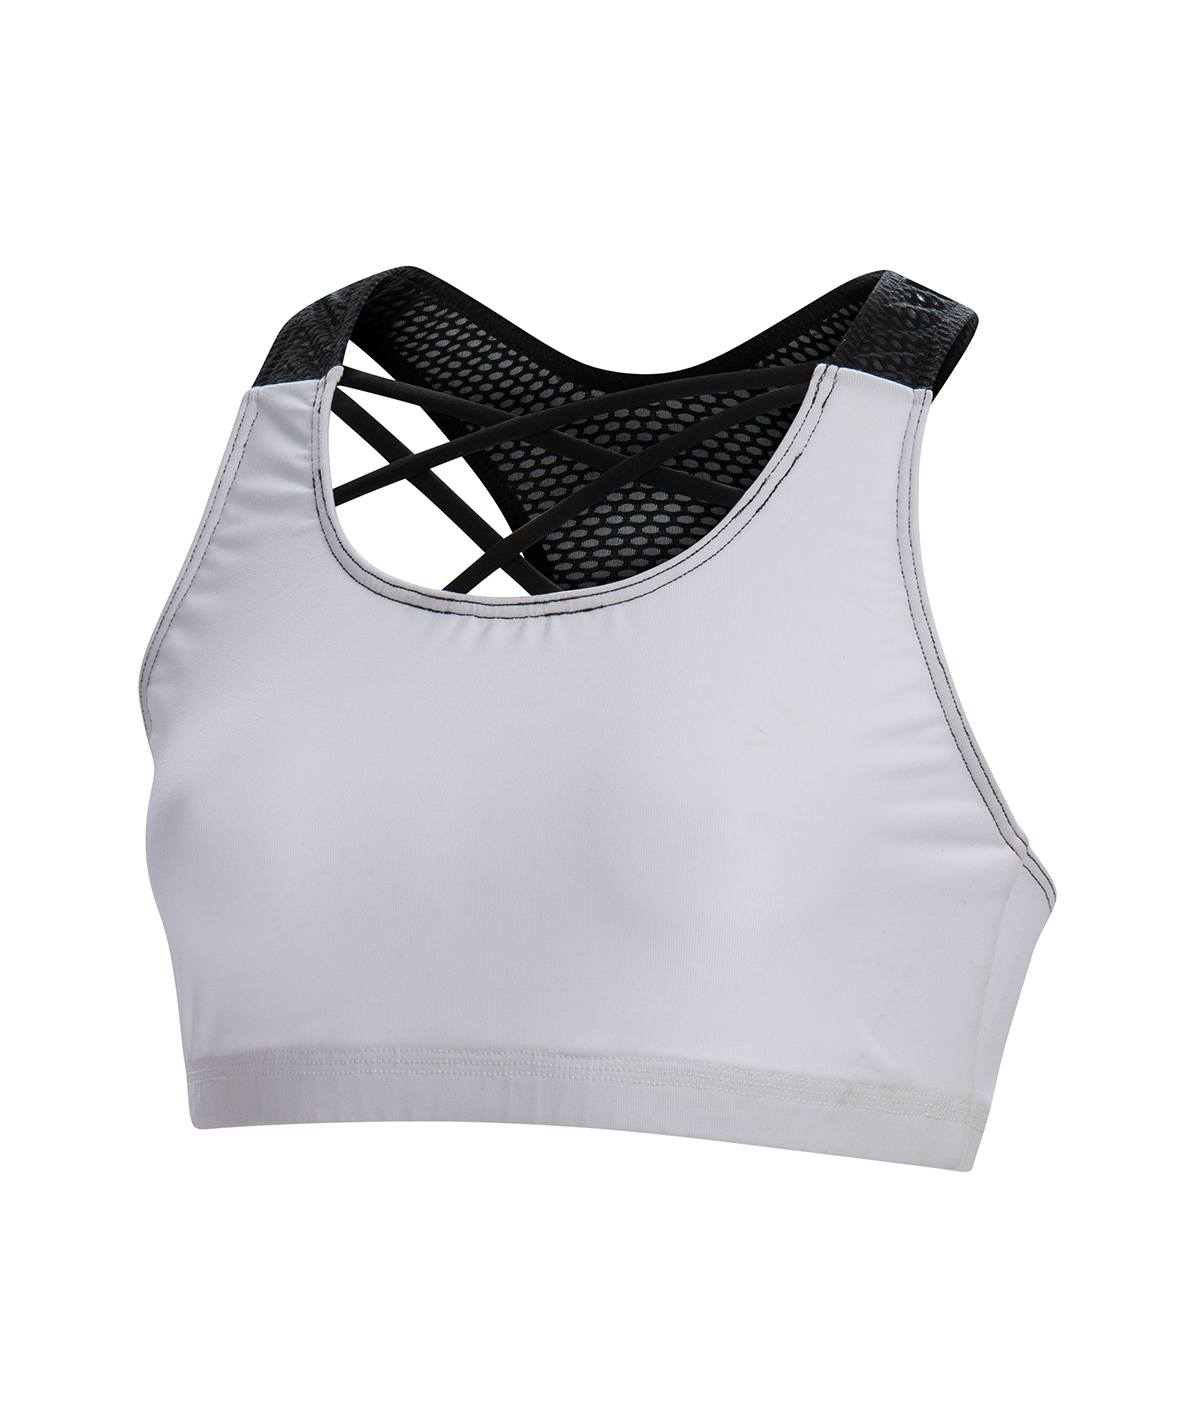 GK All Star Cross Racer Crop Top